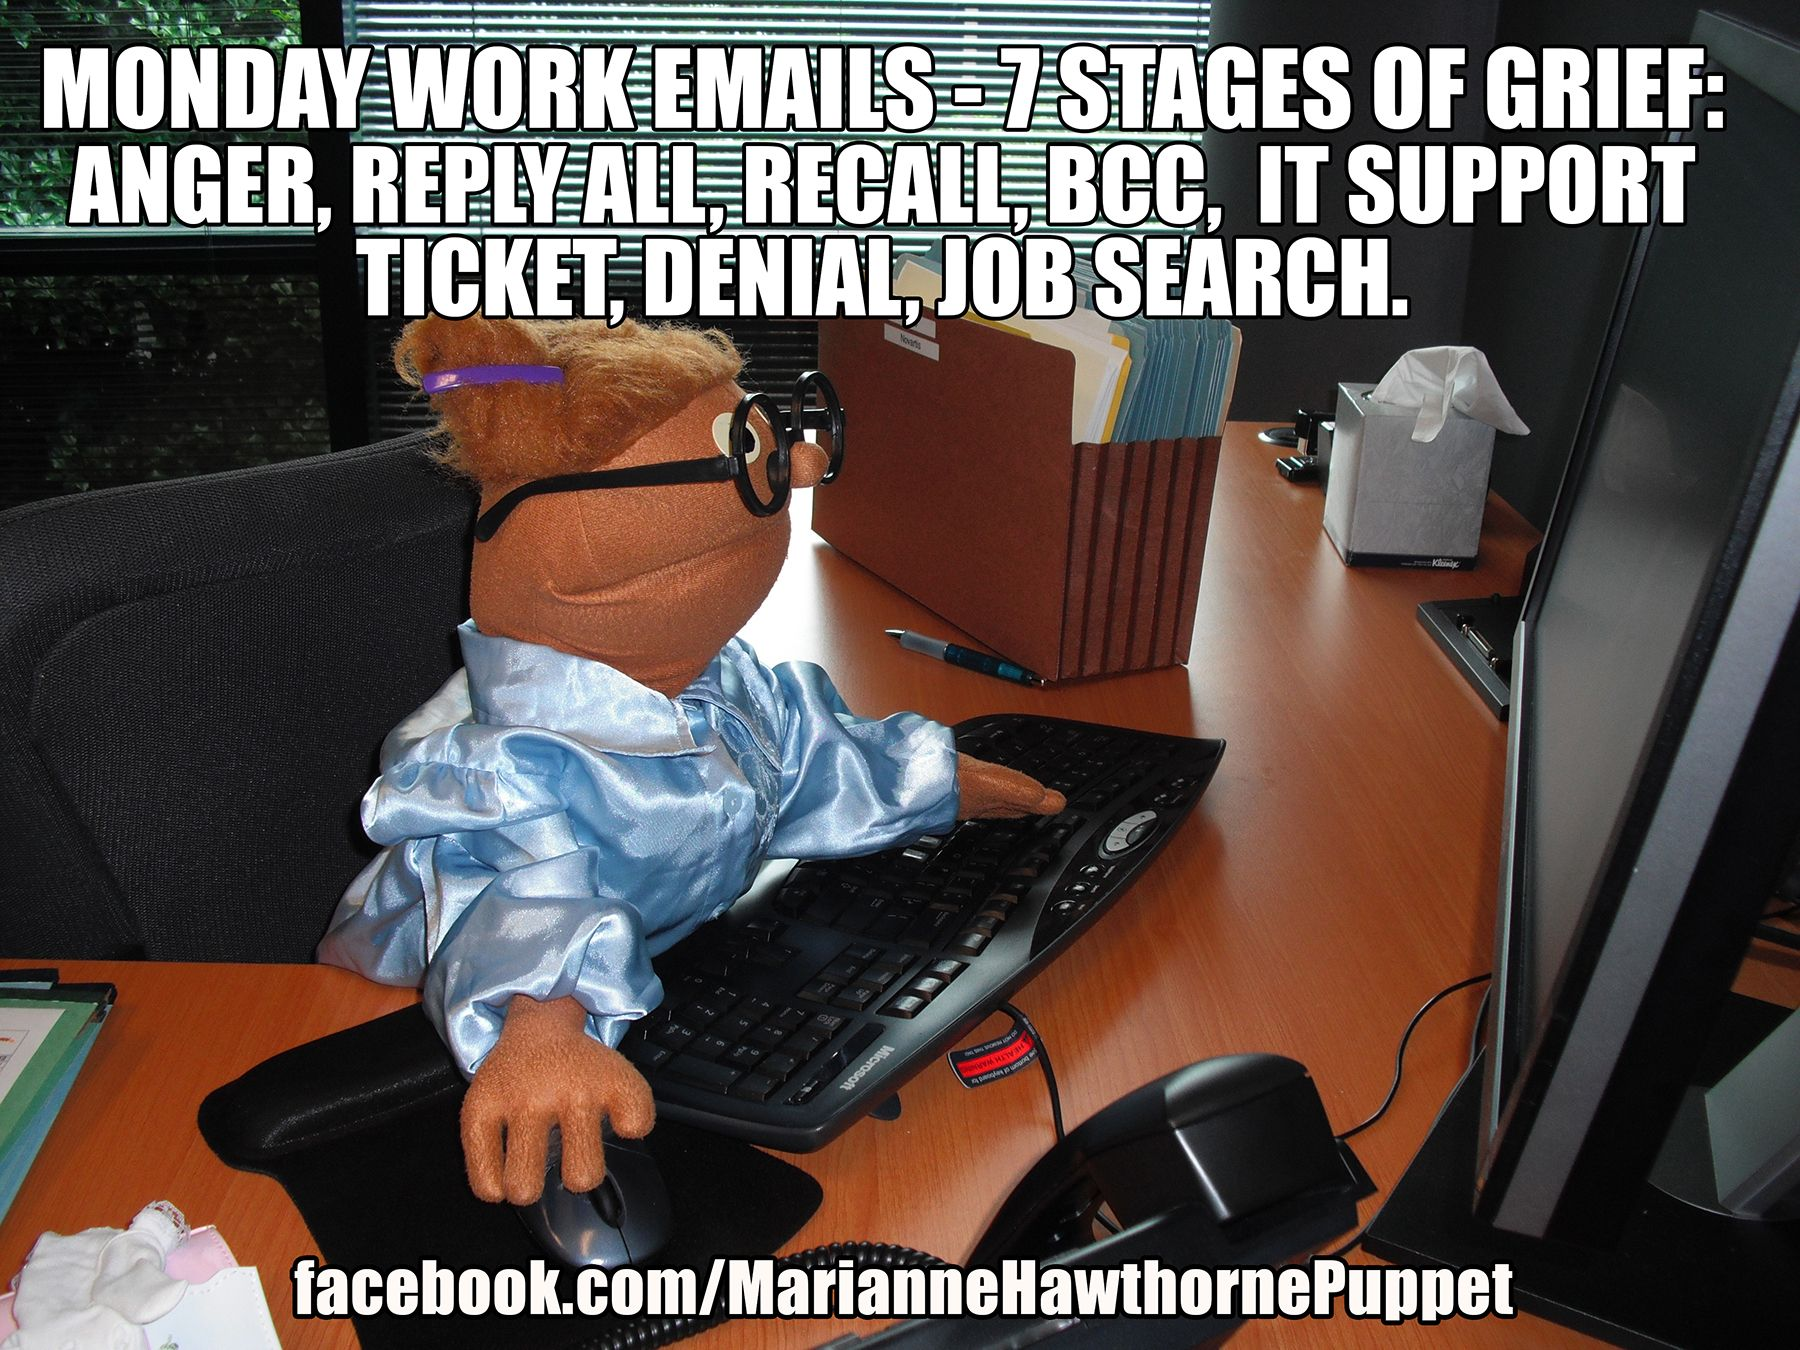 Funny Cartoon Office Meme : 7 stages of grief monday work emails anger reply all recall bcc